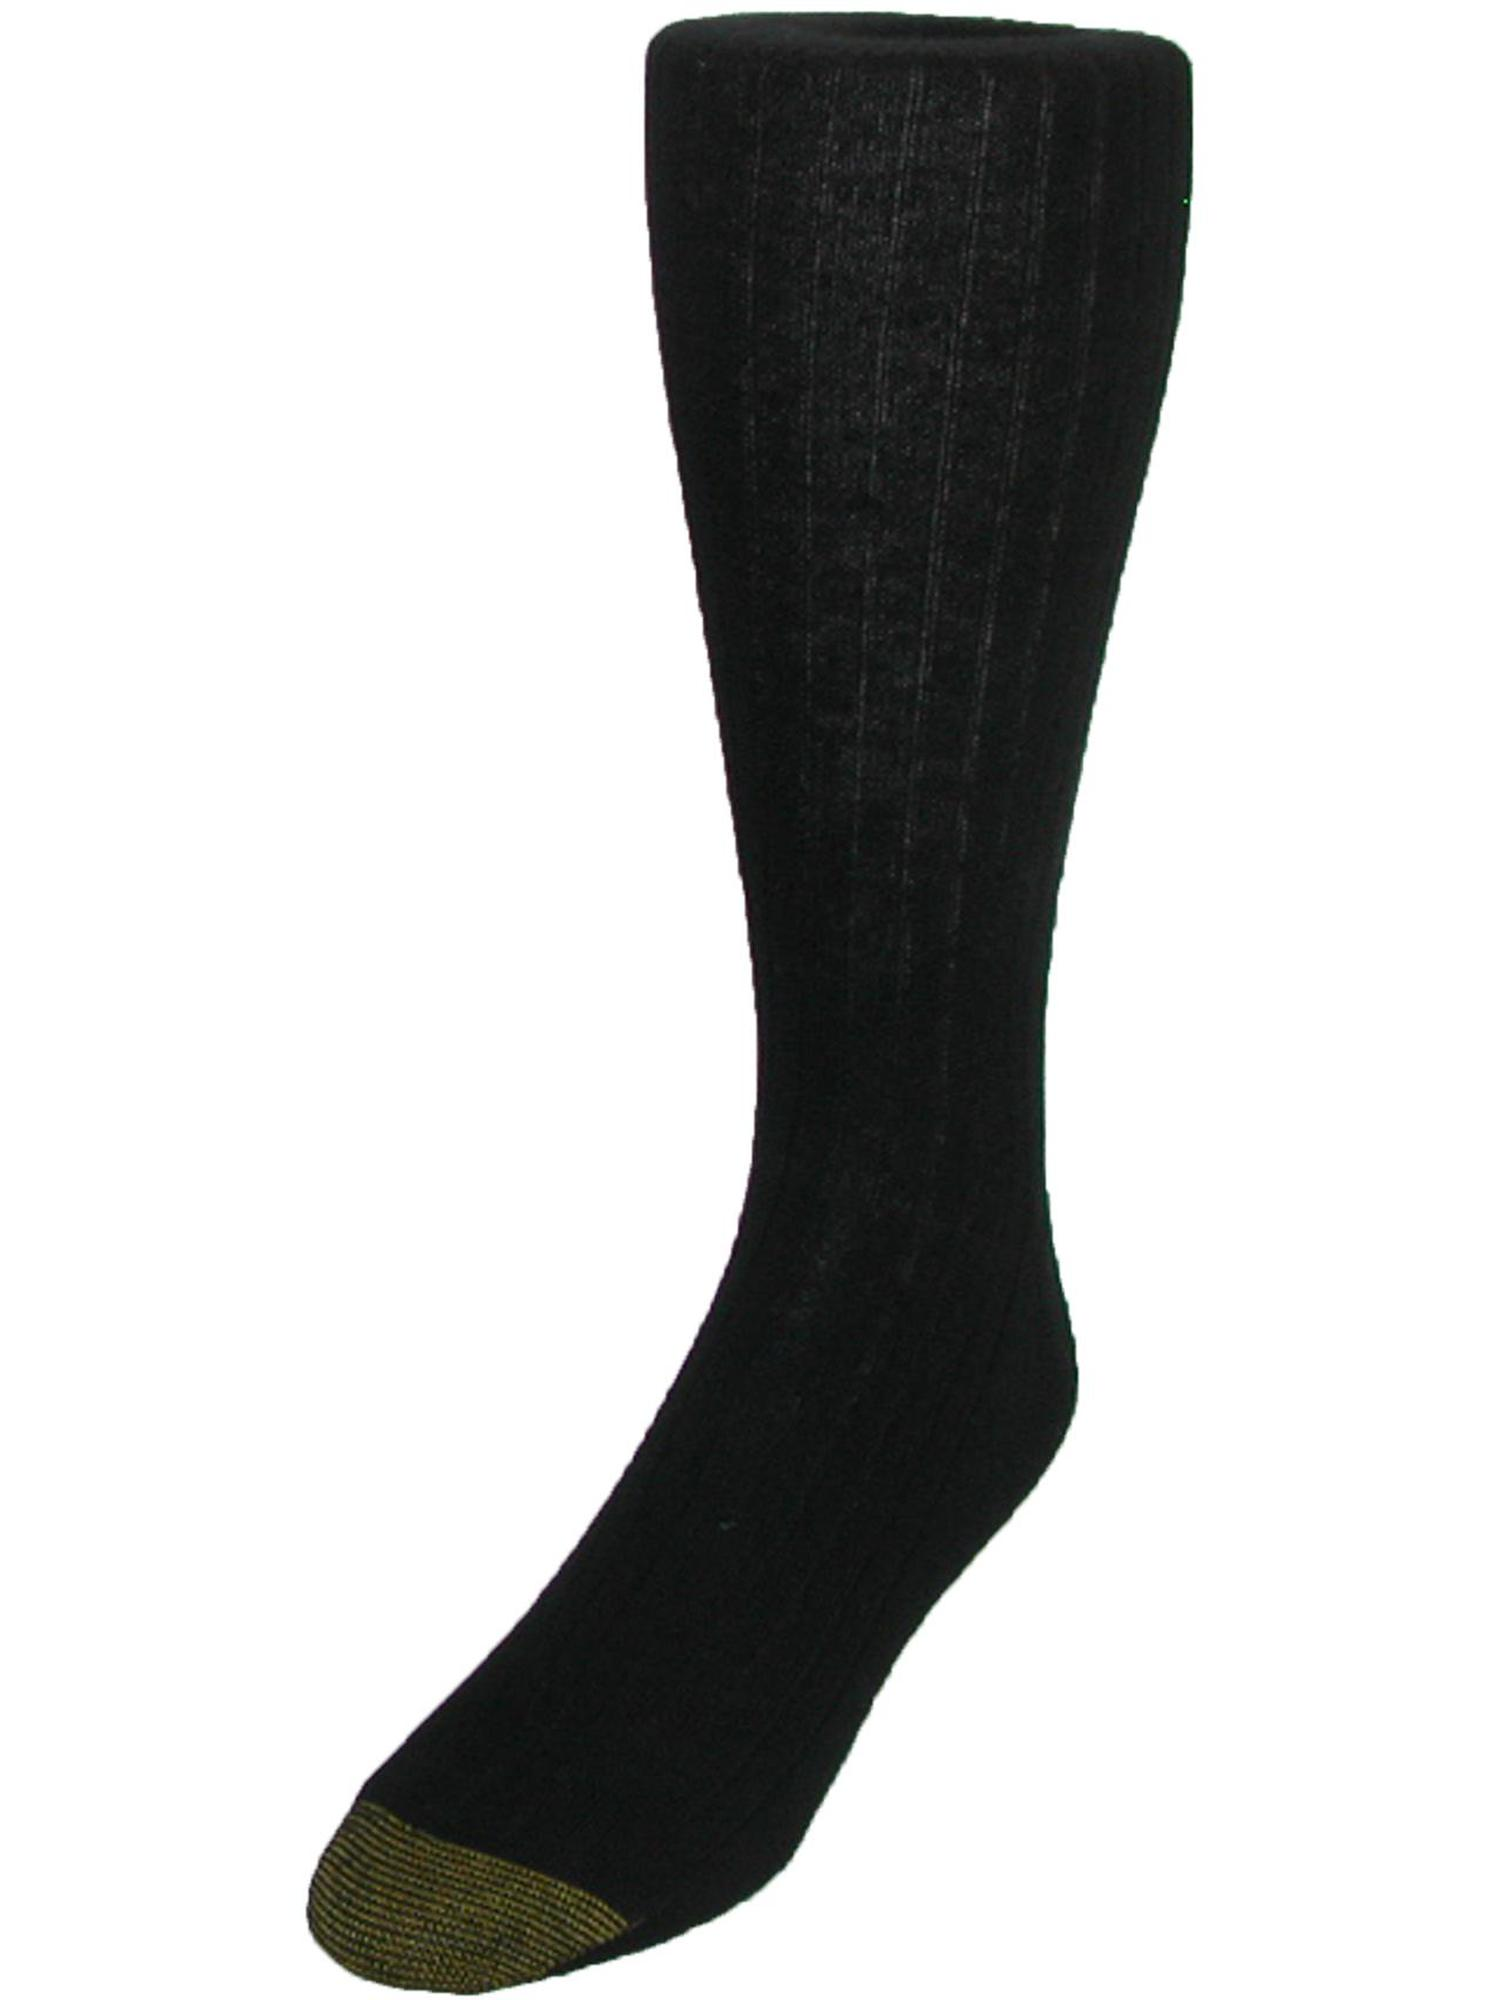 Size one sizeShoe Size 6 - 12 1/2 Men's Edinburgh Merino Wool AquaFX Dress Socks